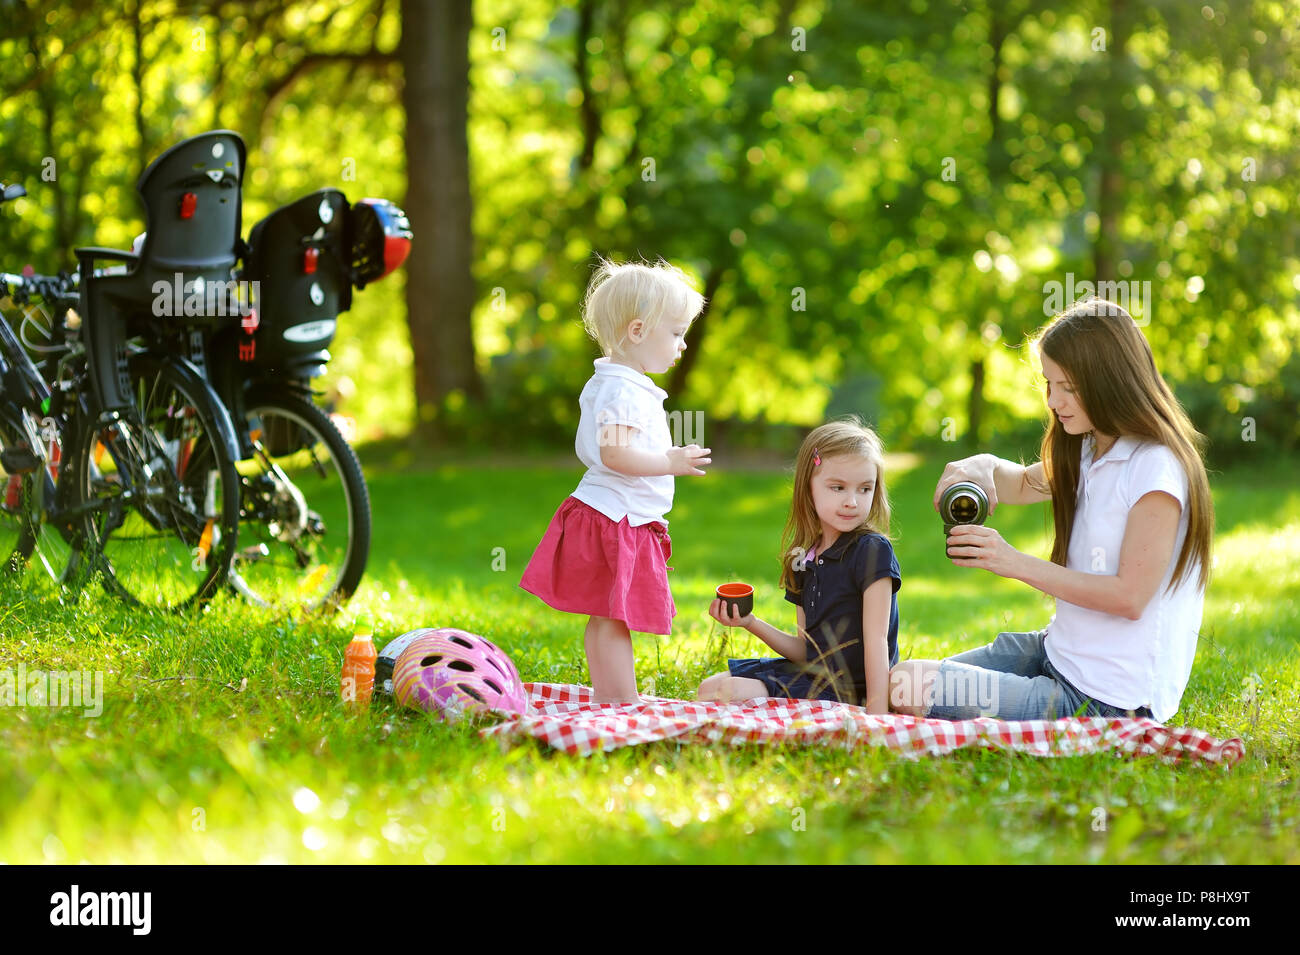 Young mother and her daughters picnicking in the park - Stock Image